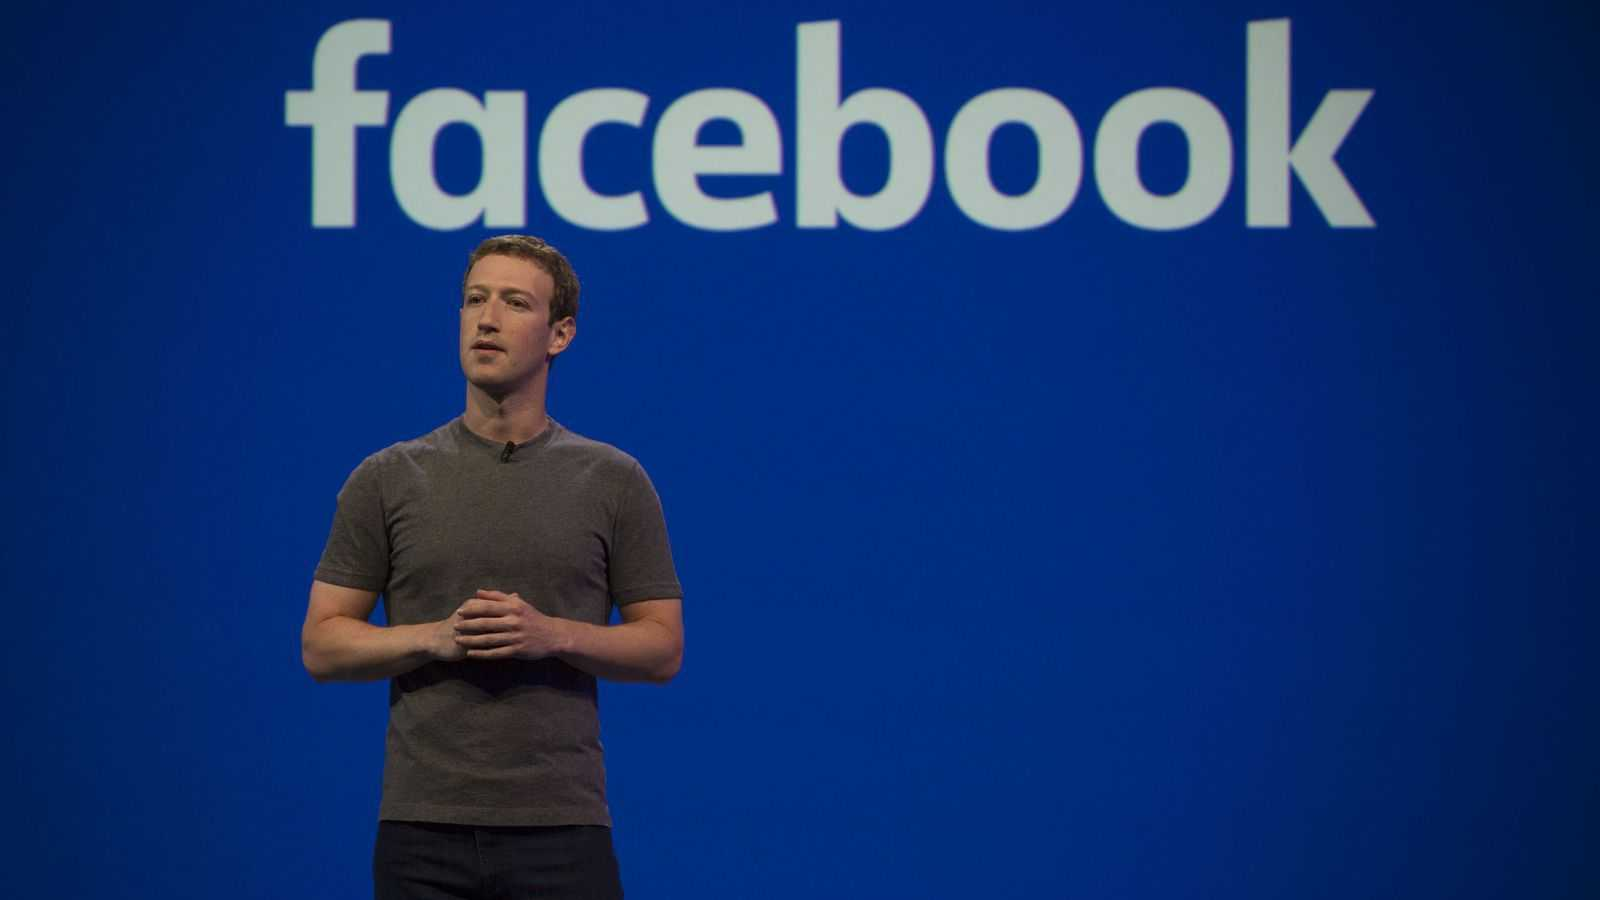 Mark Zuckerberg Stays Silent Amid Controversy | zuckerberg